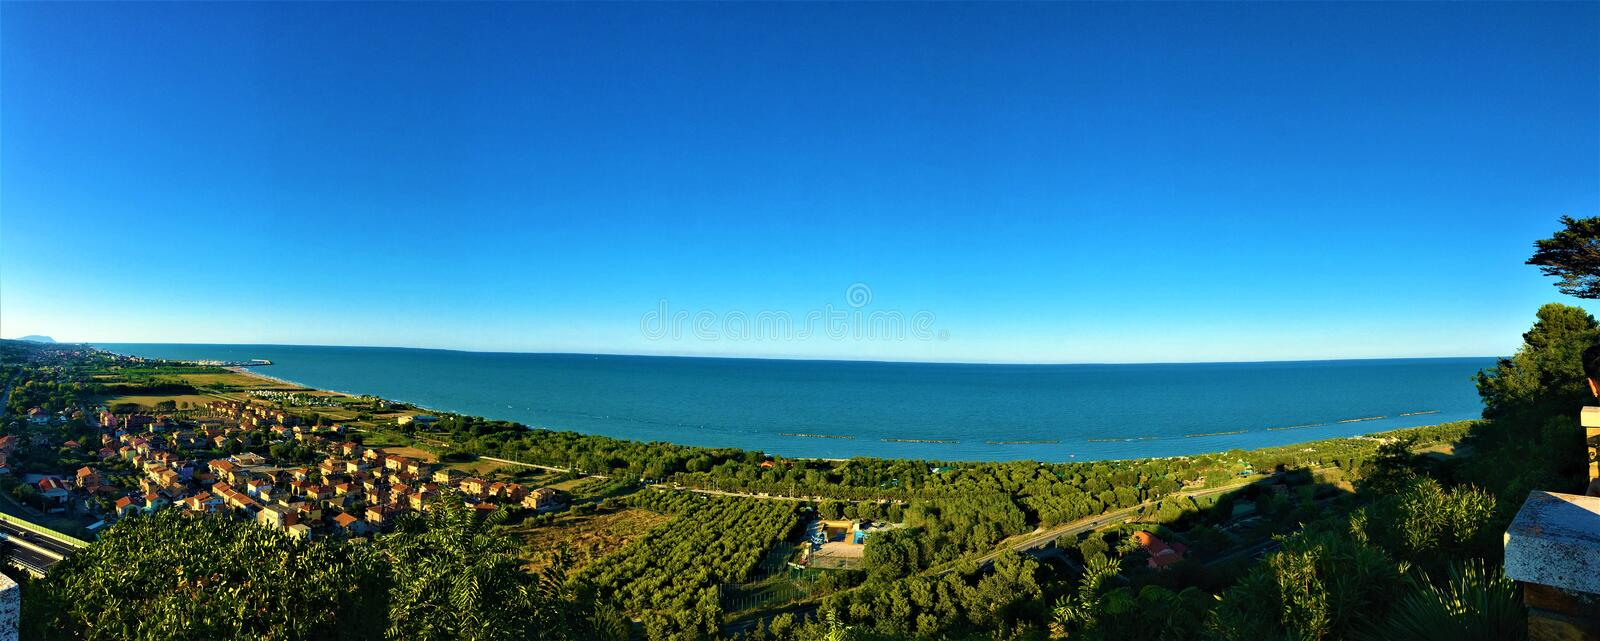 Torre di Palme town in Marche region, Italy. Splendid landscape, view of Adriatic sea royalty free stock photos